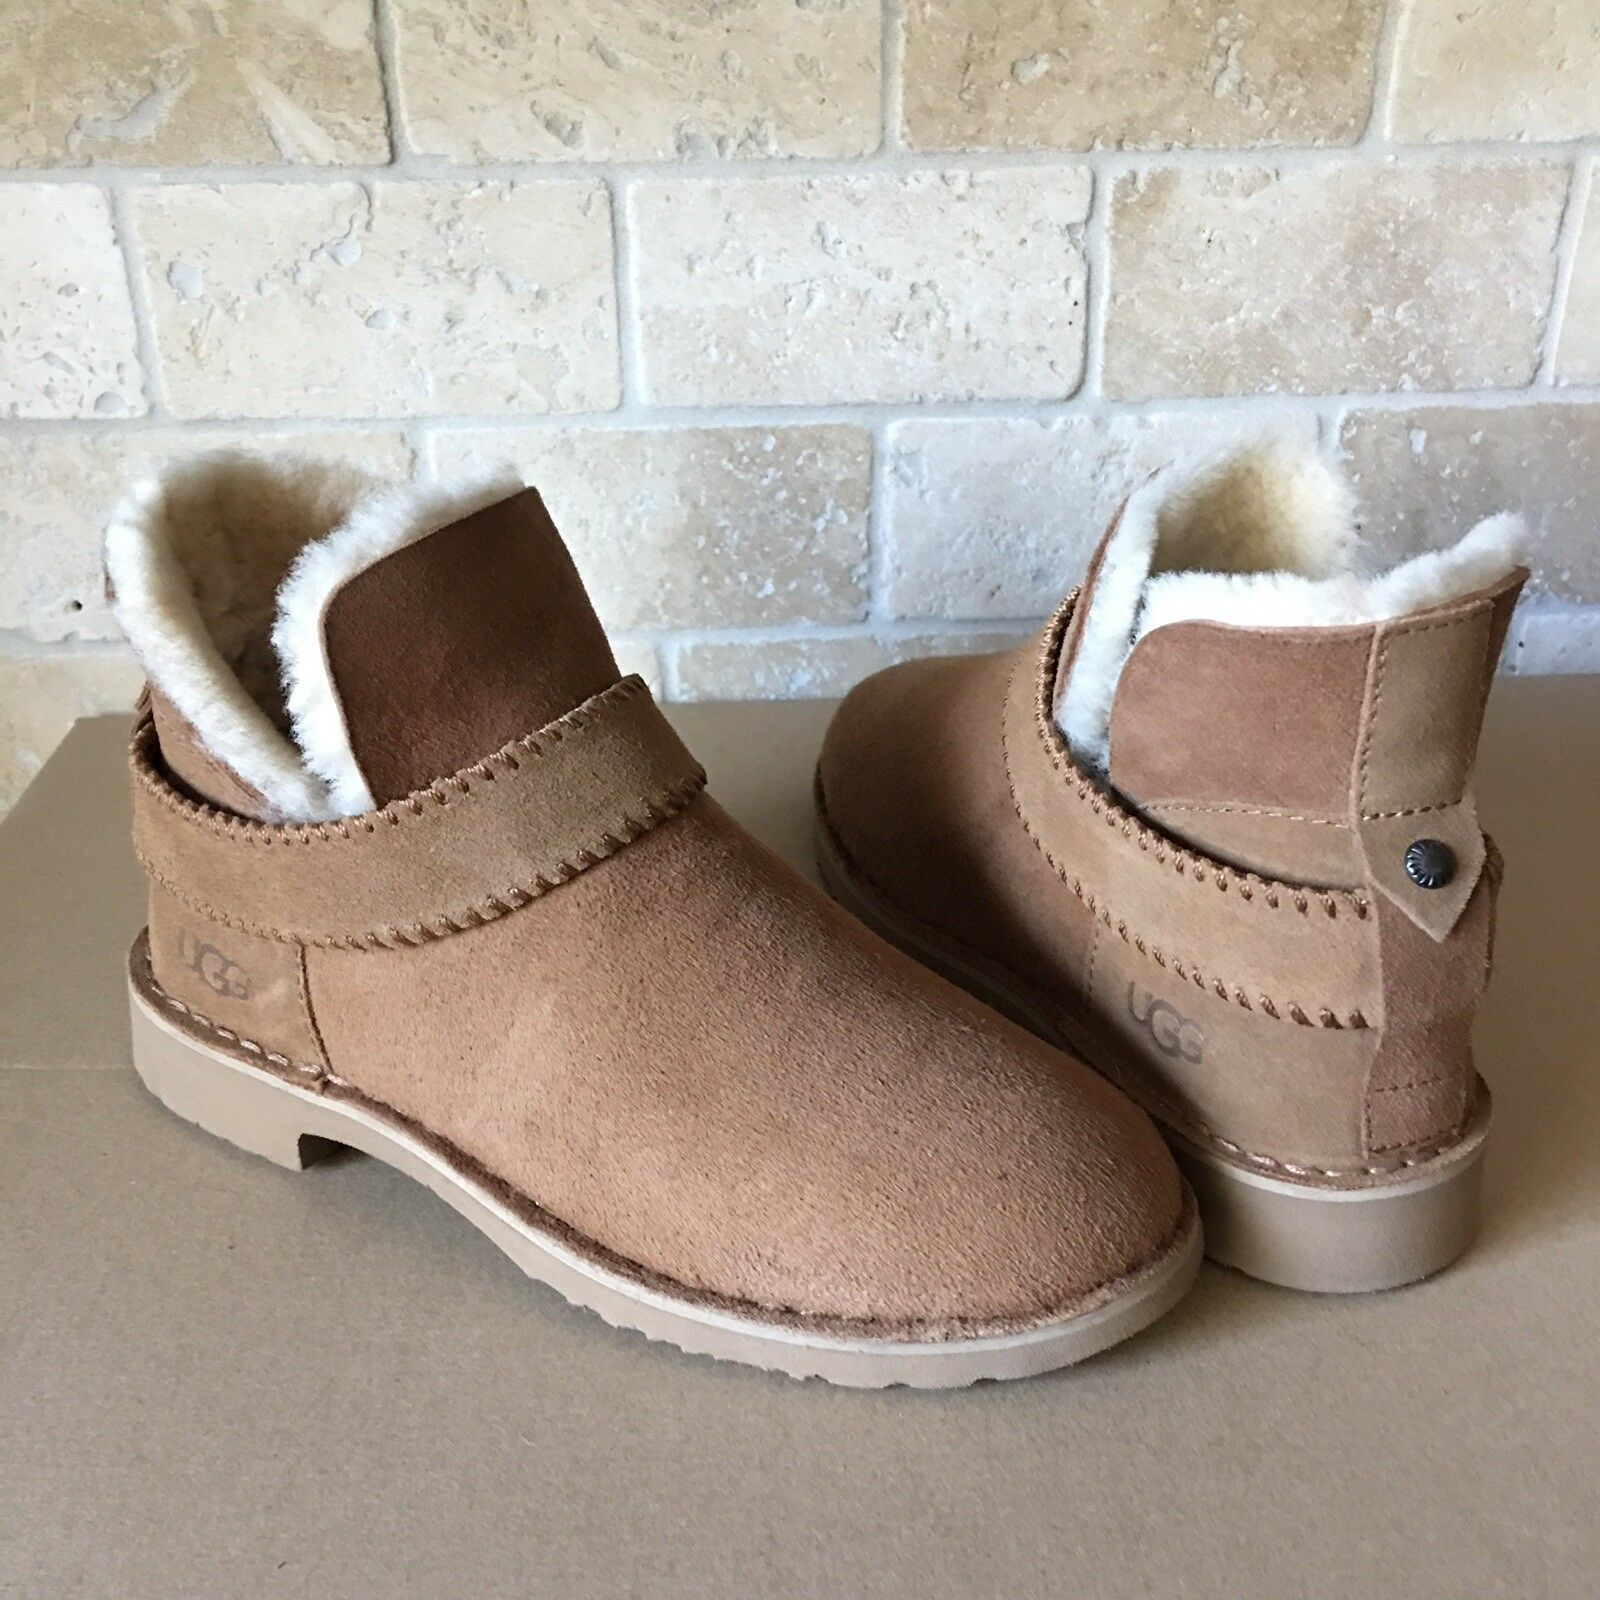 9c9b2e4f7cd UGG Mckay Chestnut Suede Shearling Ankle Shoes Boots Booties Size US 6  Womens